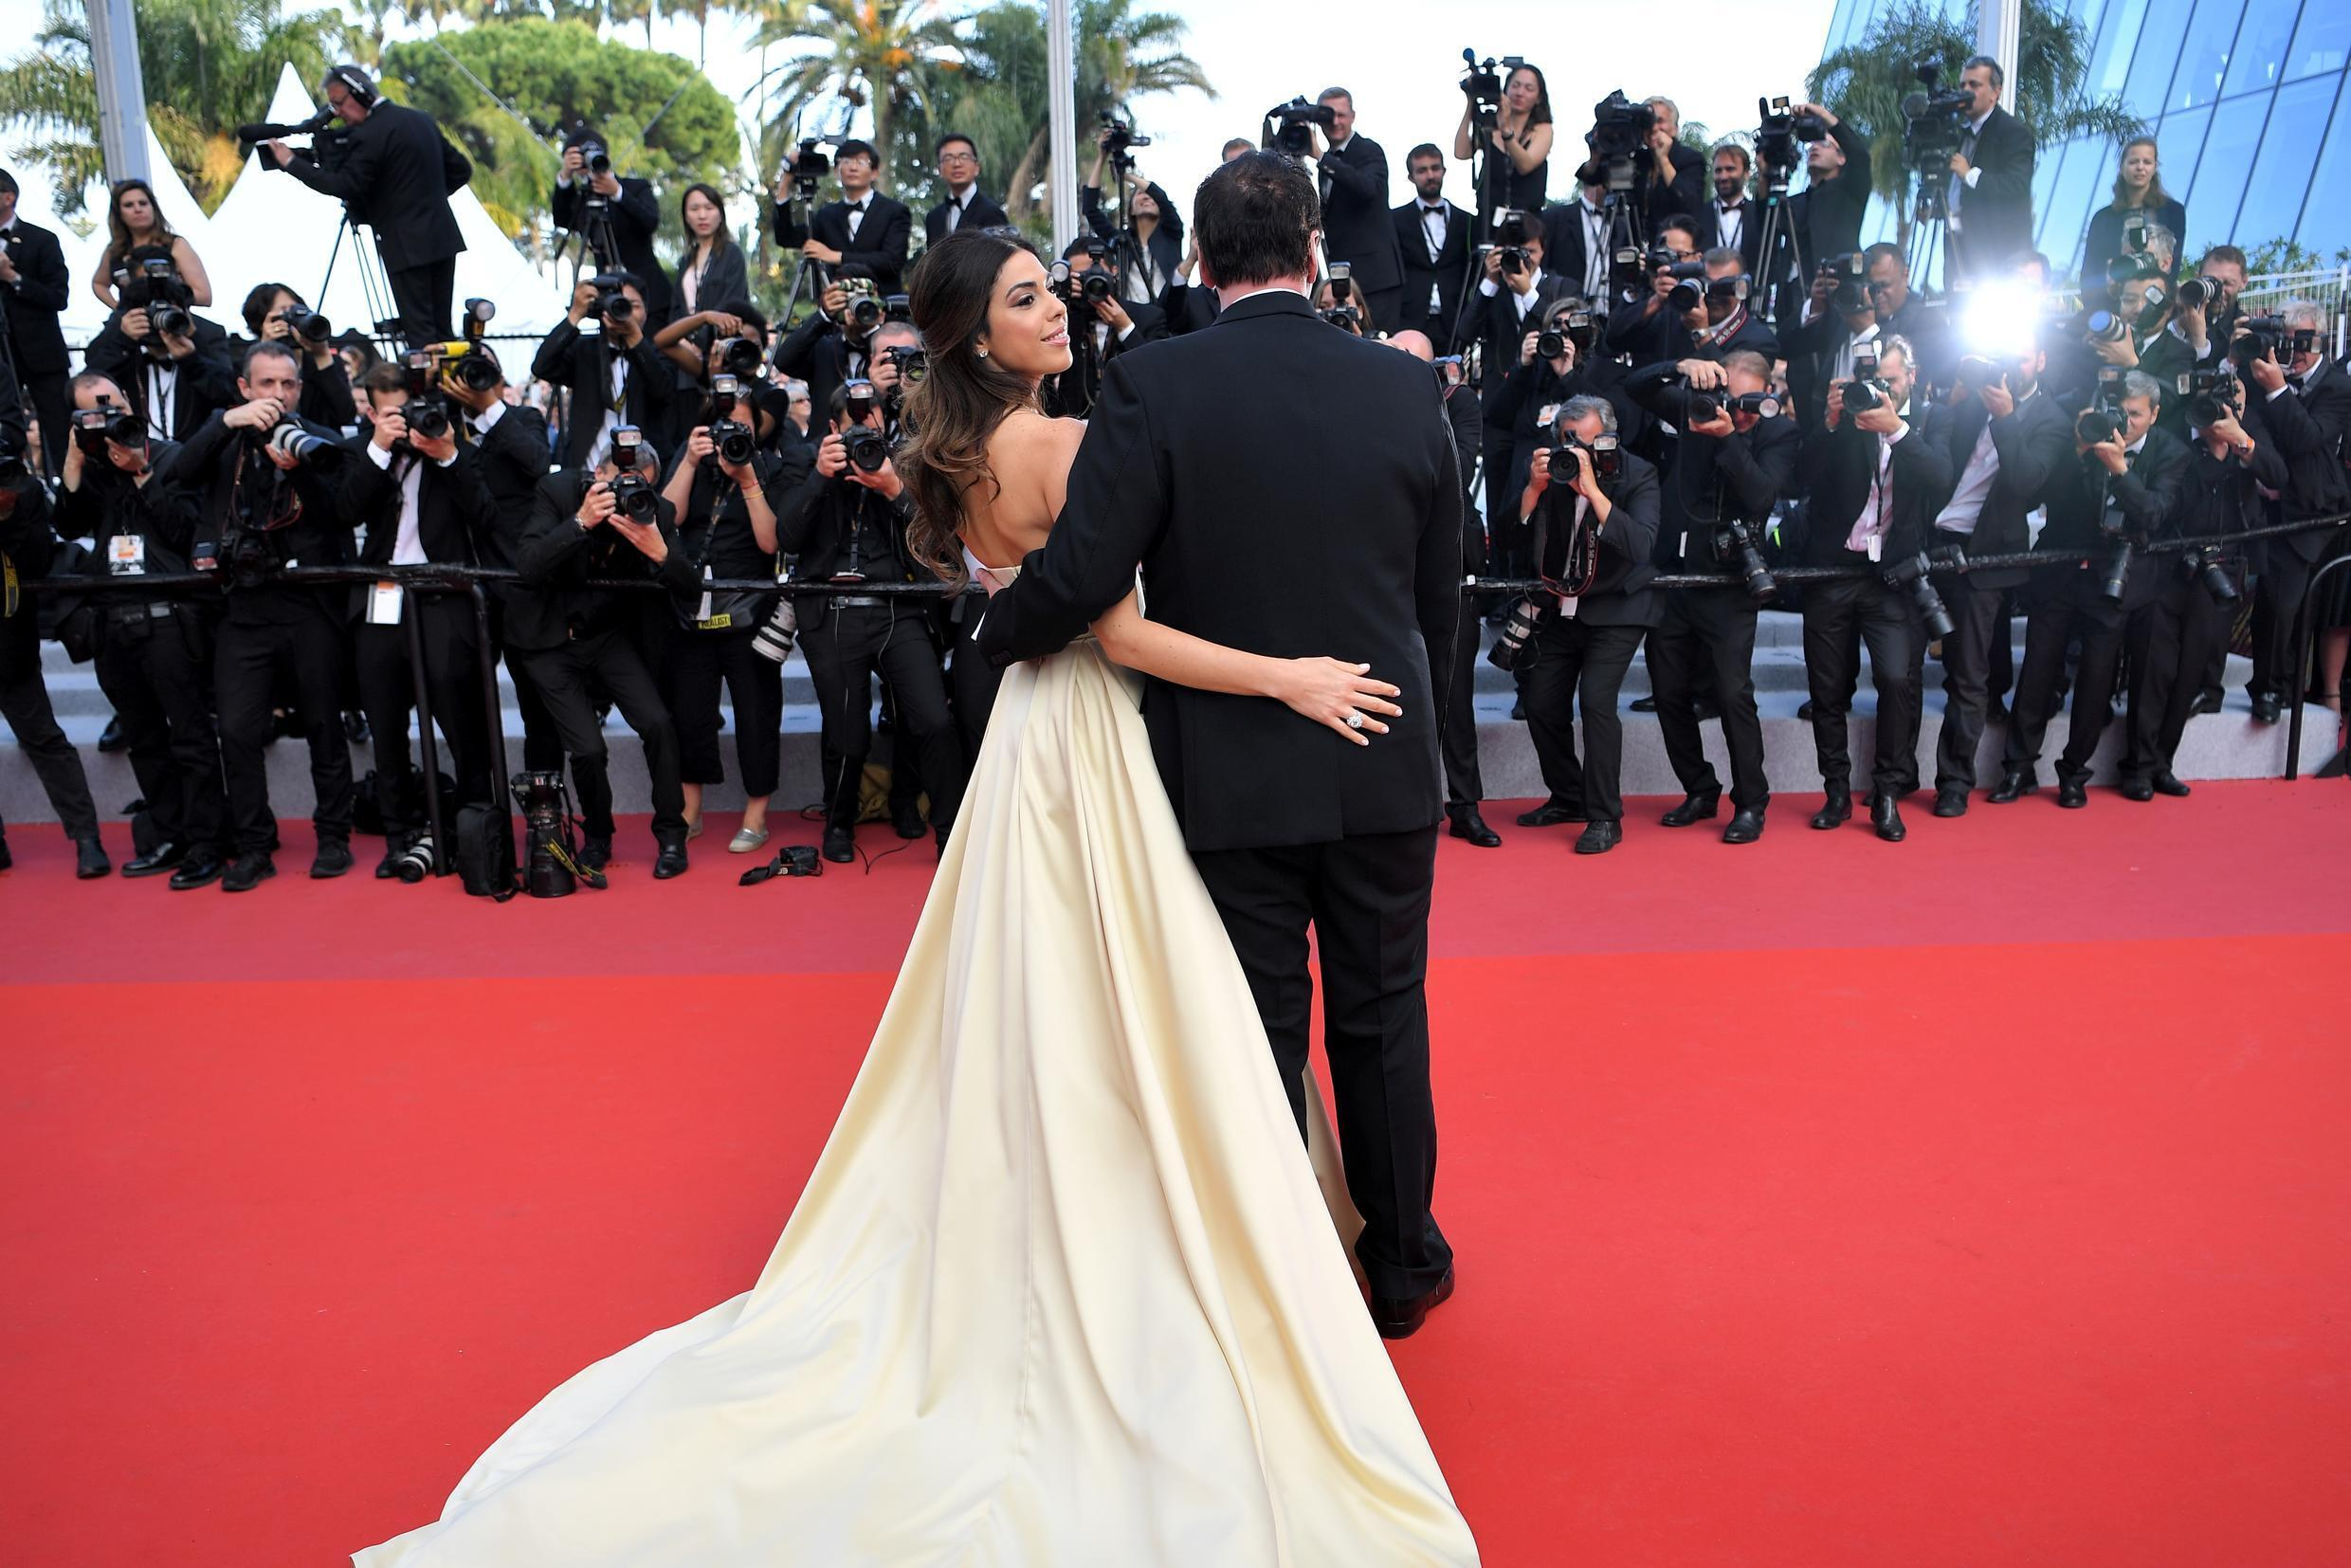 """Israeli singer Daniella Pick and her huband US film director Quentin Tarantino arrive for the screening of the film """"The Specials (Hors Normes)"""" at the 72nd edition of the Cannes Film Festival in Cannes, southern France, on May 25, 2019."""